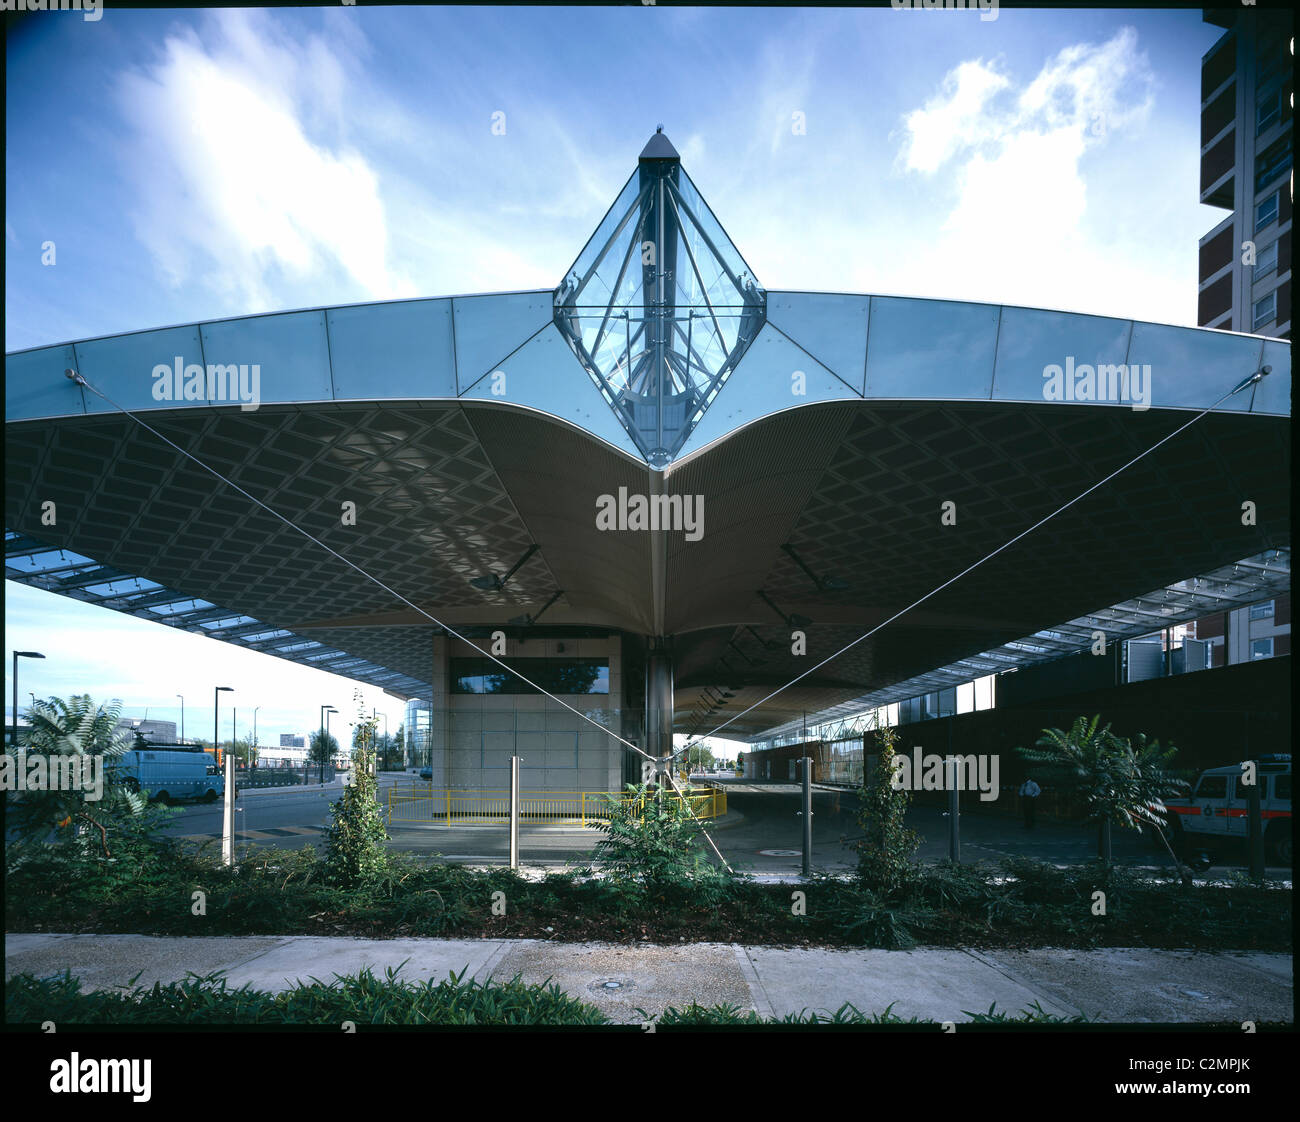 Canada Water Bus Station, London - Rear elevation. - Stock Image